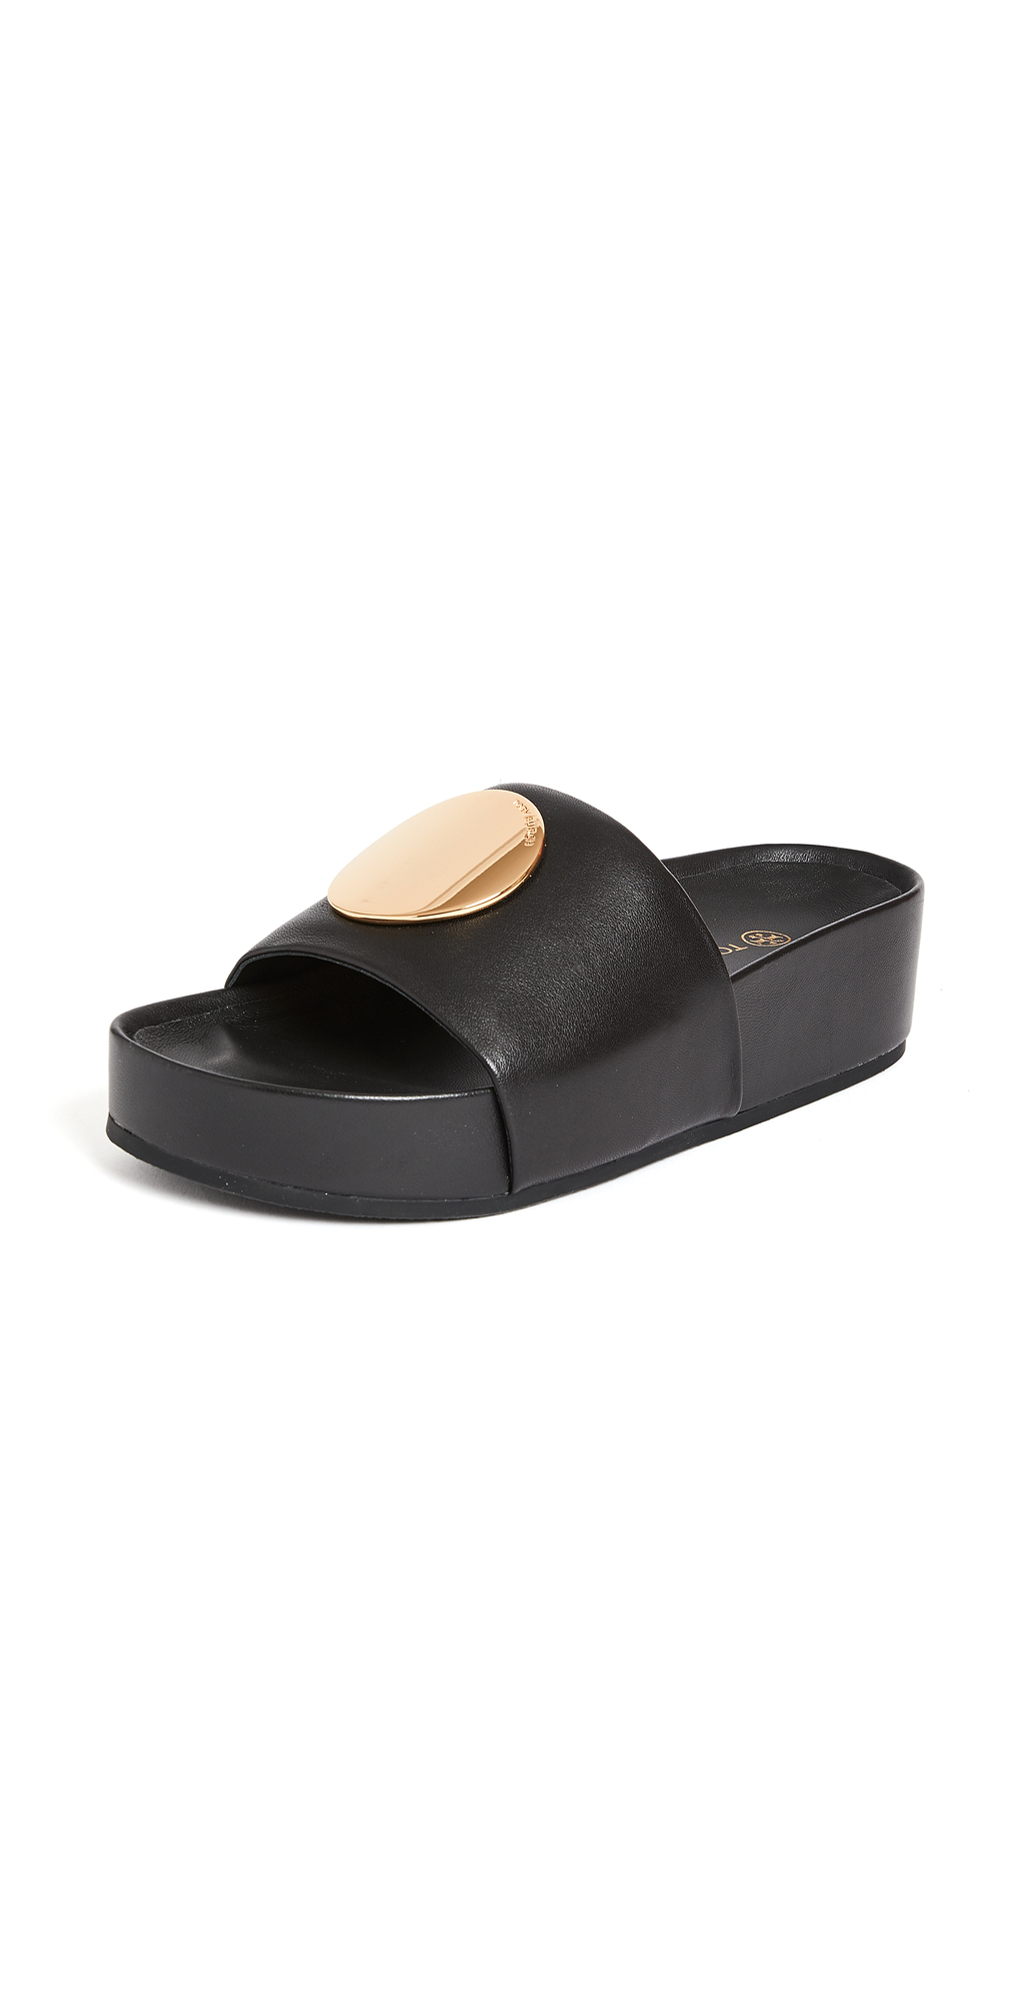 Tory Burch Patos Slides